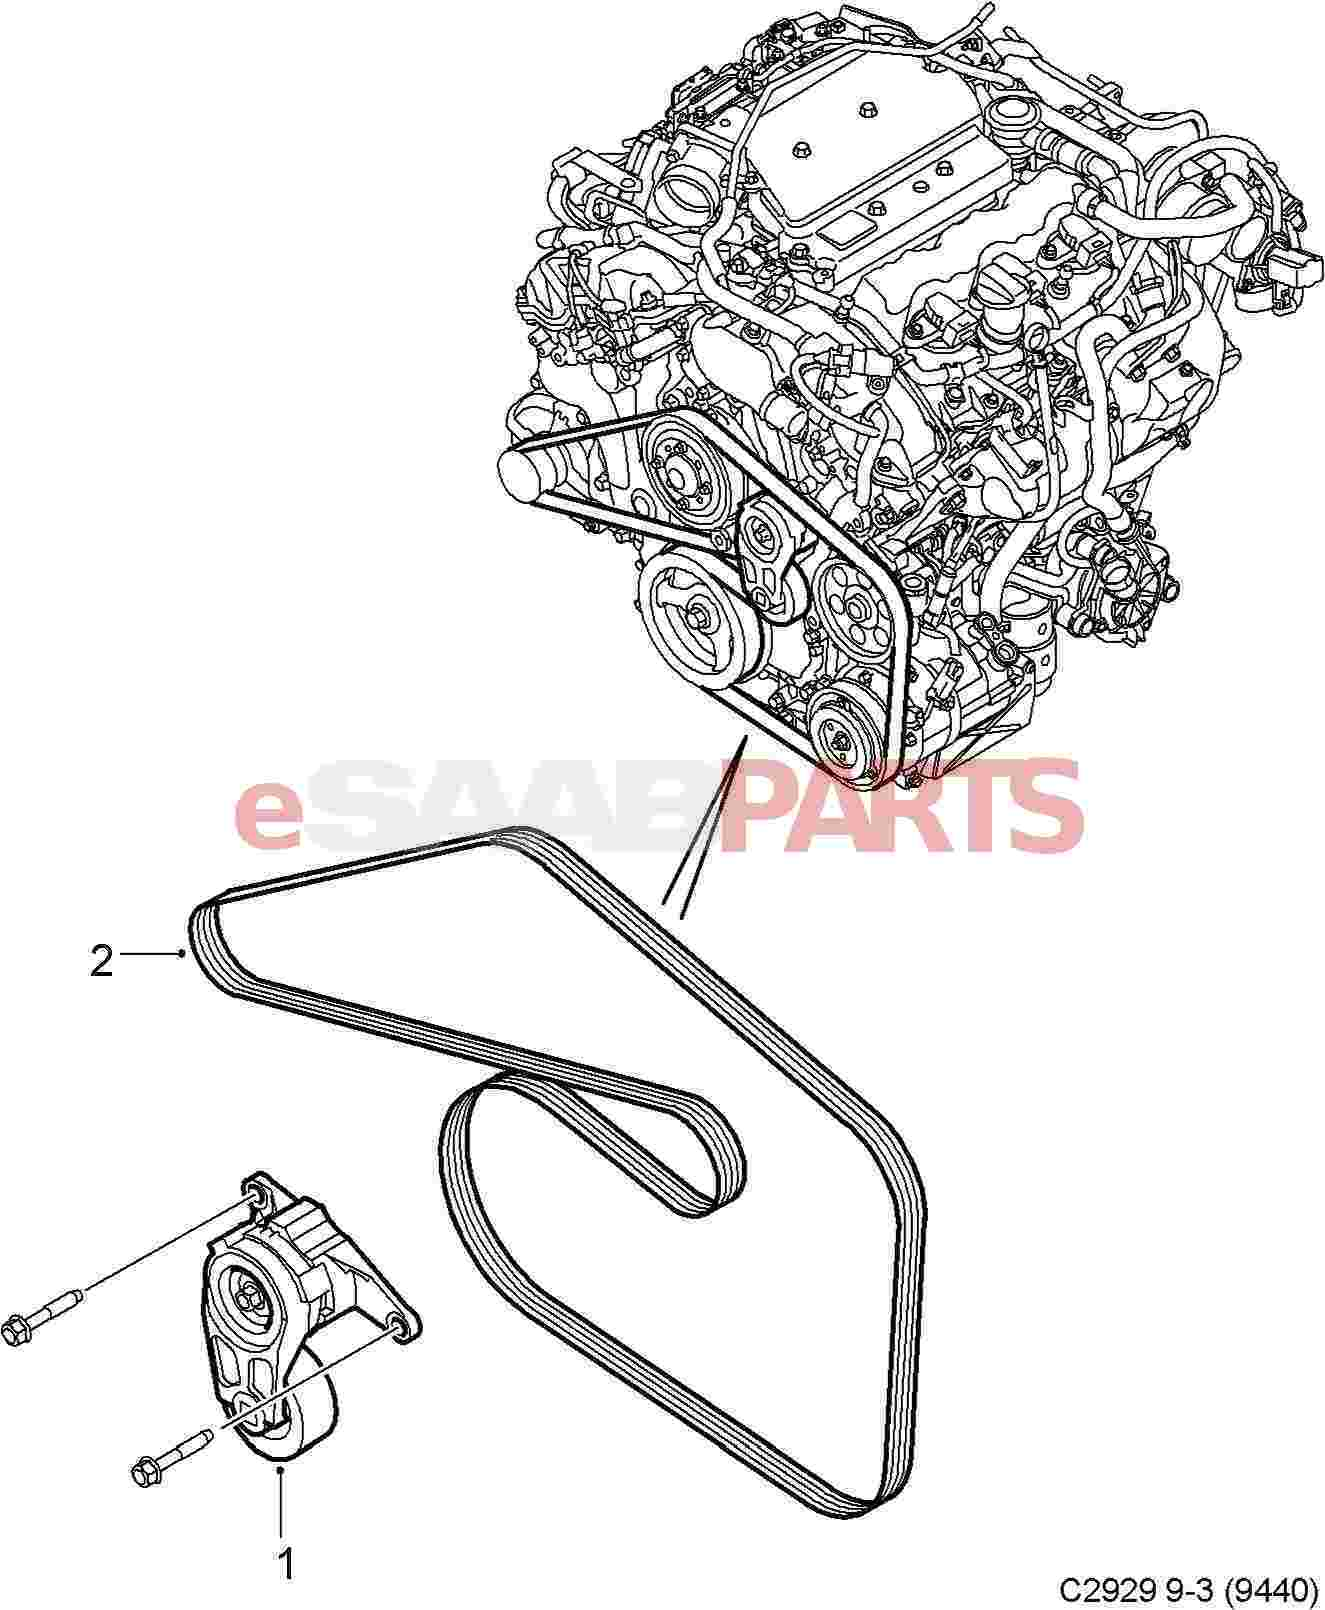 93185756  saab serpentine belt  2 8t v6 9-3